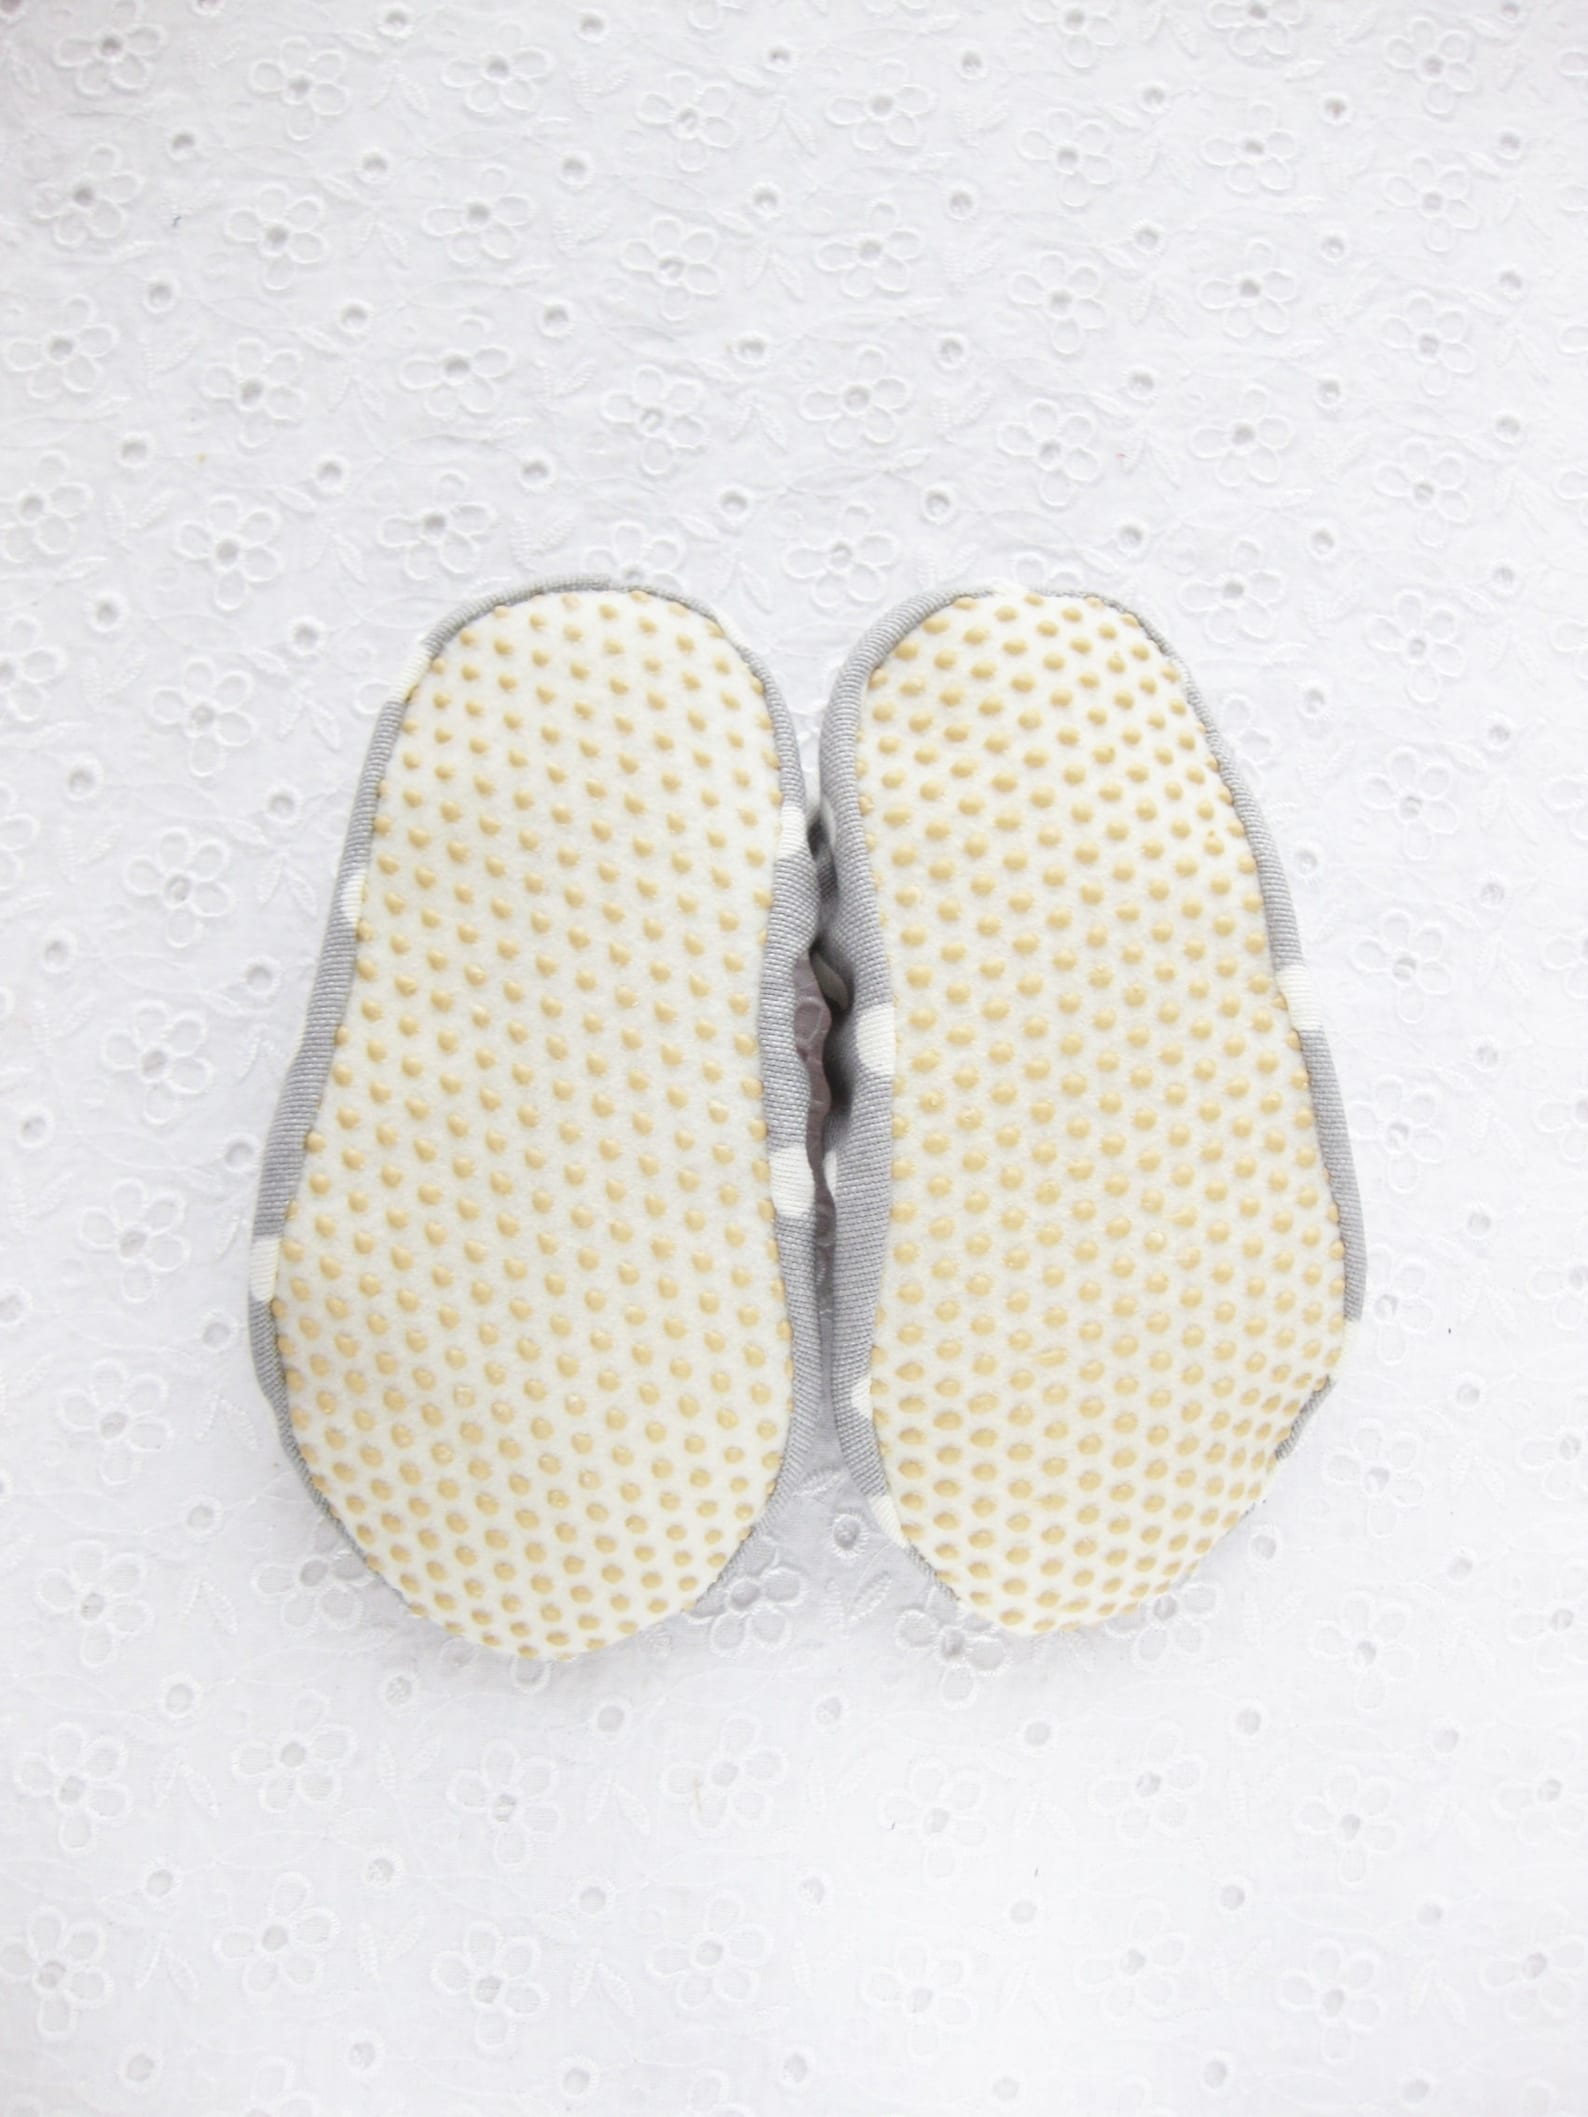 women slippers, cakes , ballet flats, cotton slippers, ballet slippers, gift women, gift girl, healthy home shoes, handmade slip